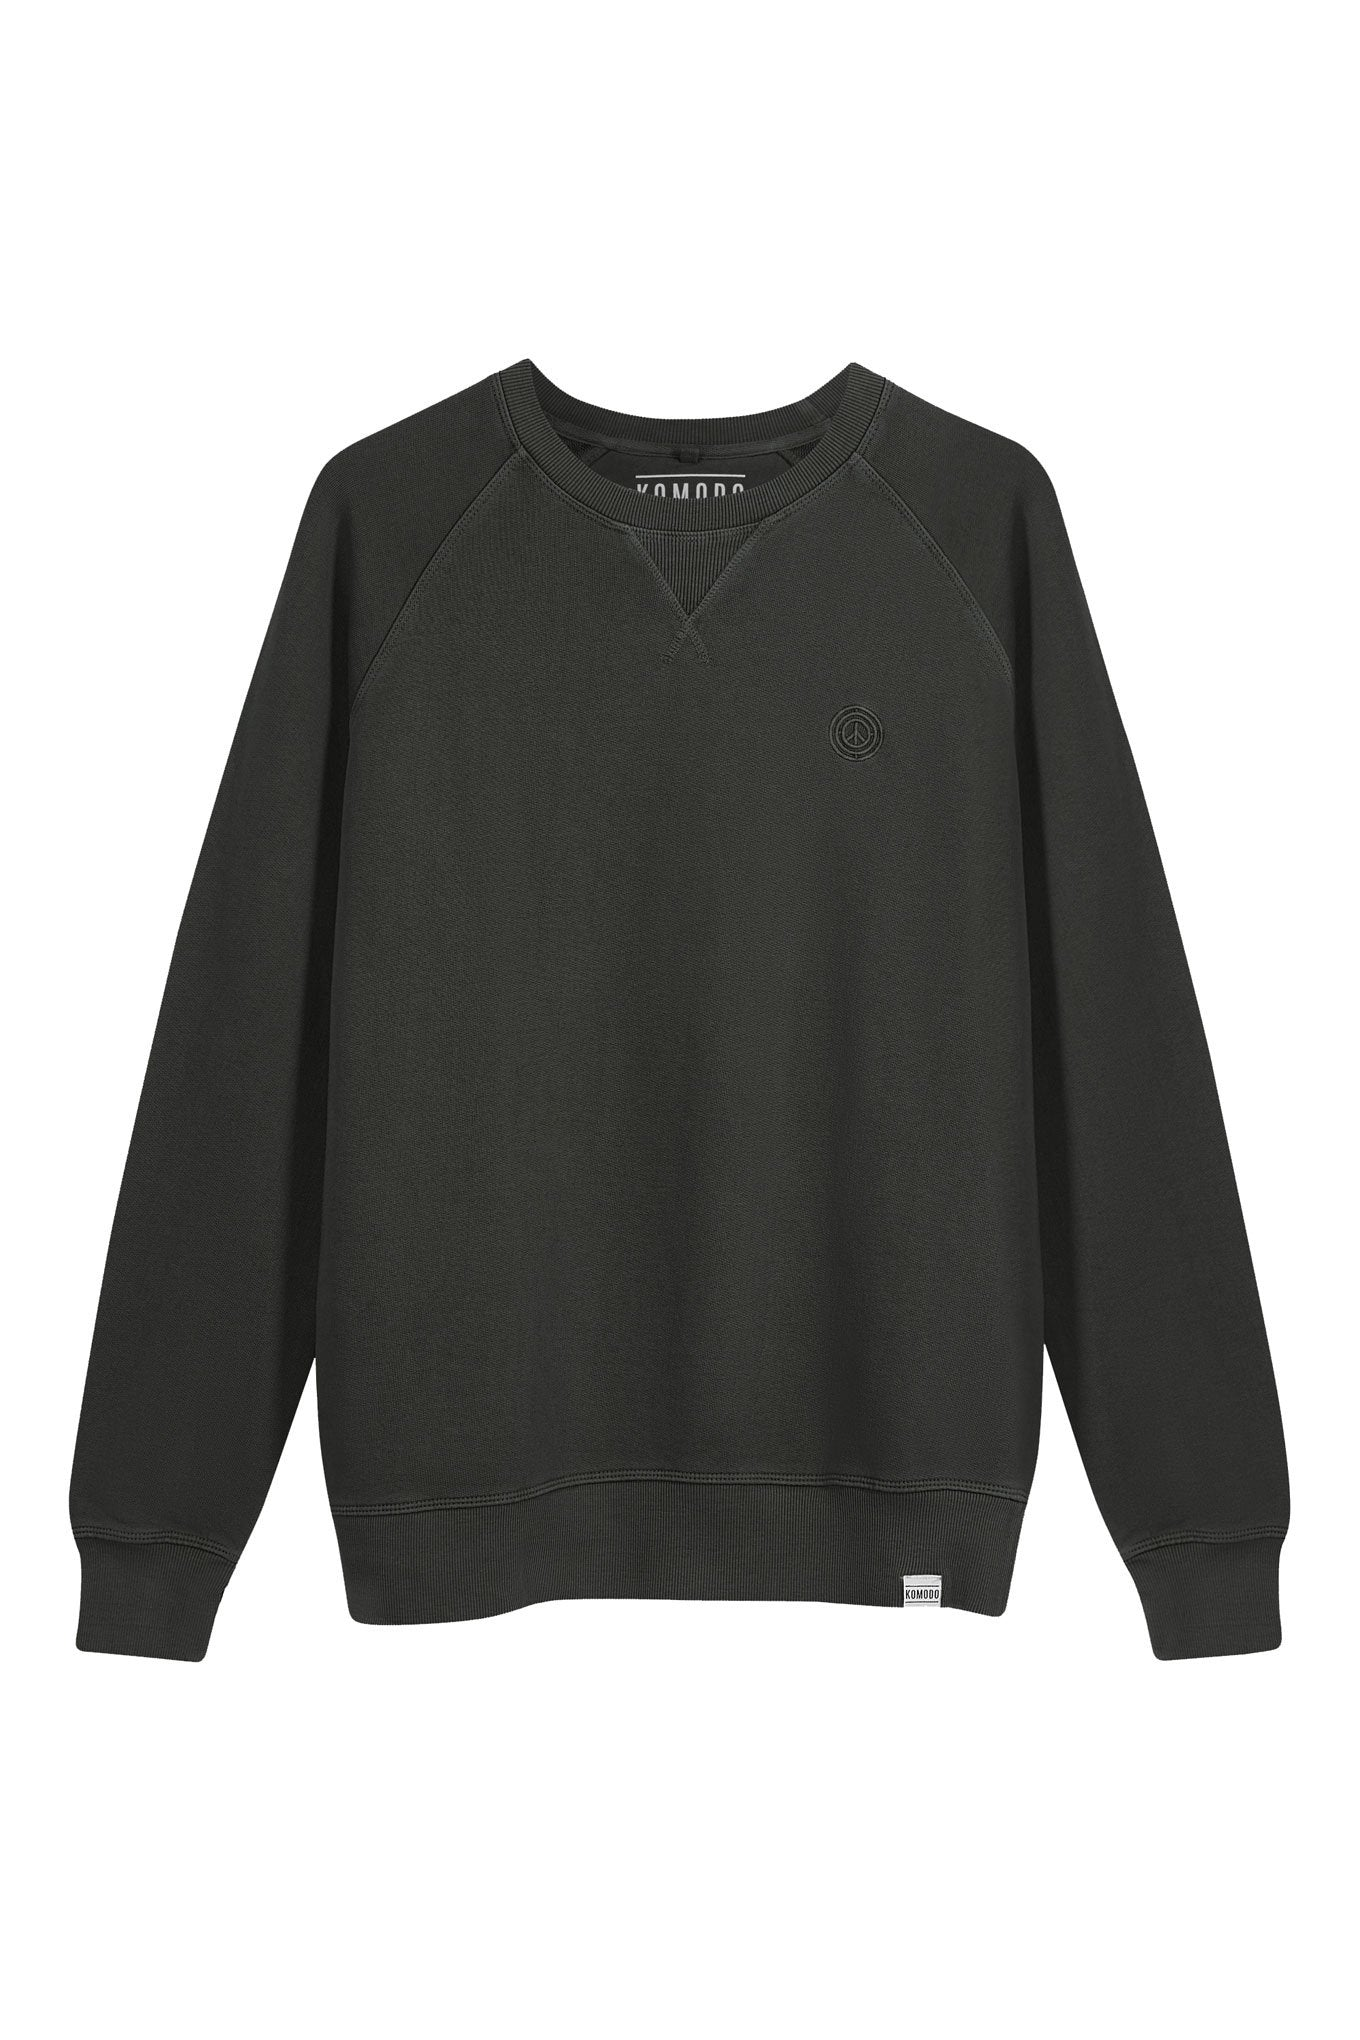 ANTON Womens - GOTS Organic Cotton Crewneck Black